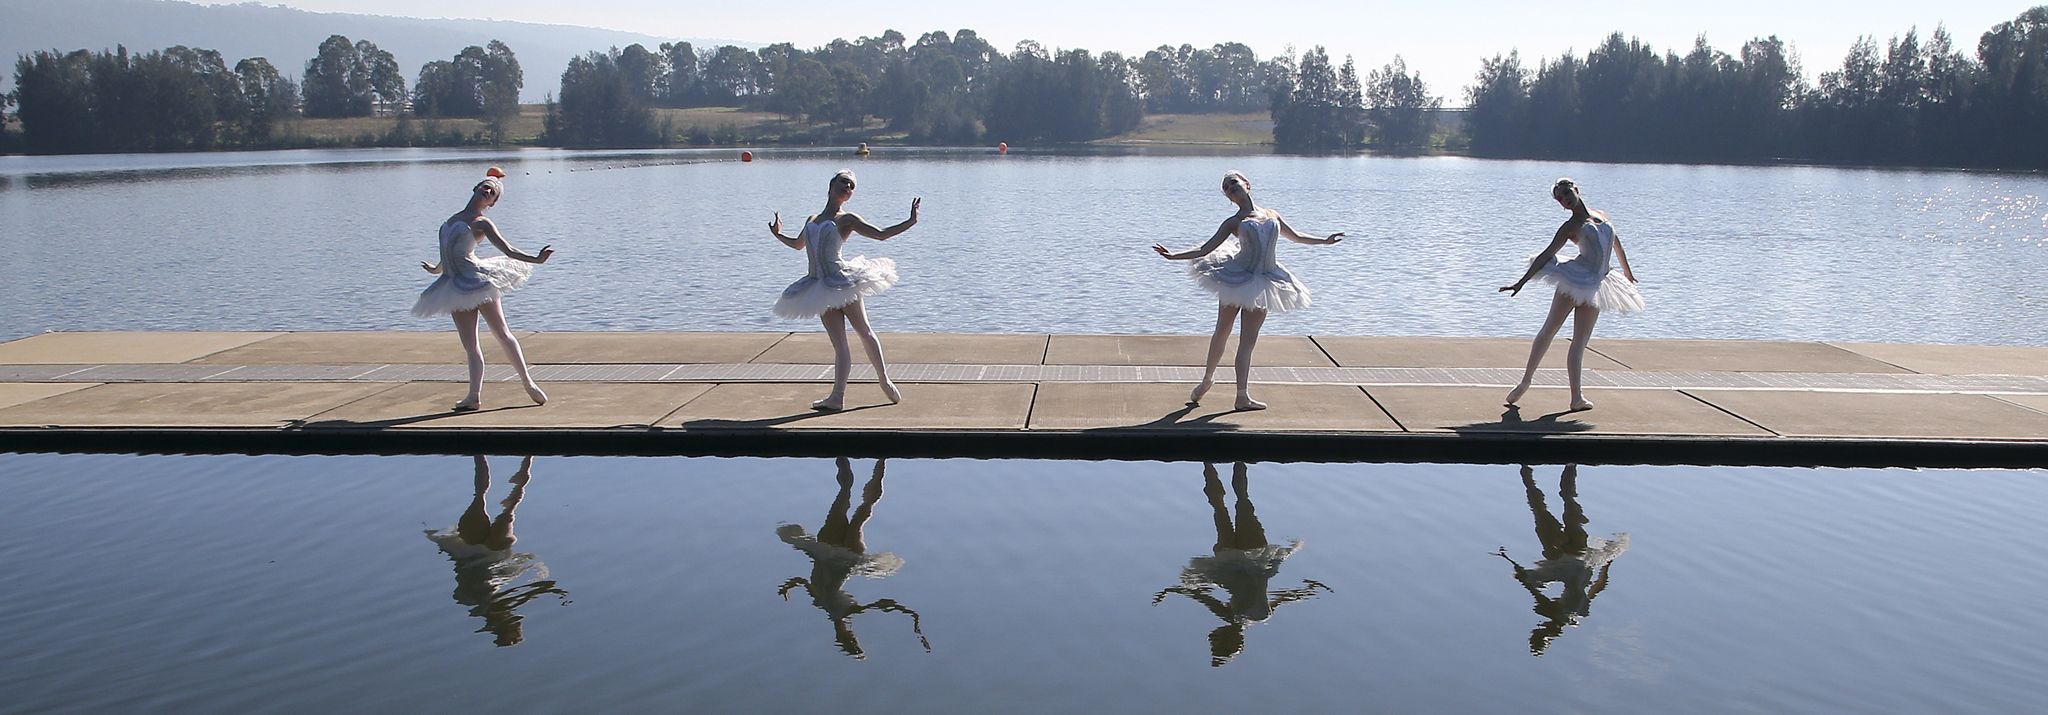 our dancers from The Australian Ballet dressed in white swan tutus pose for photos on floating barge in Penrith Lake in Sydney, Australia